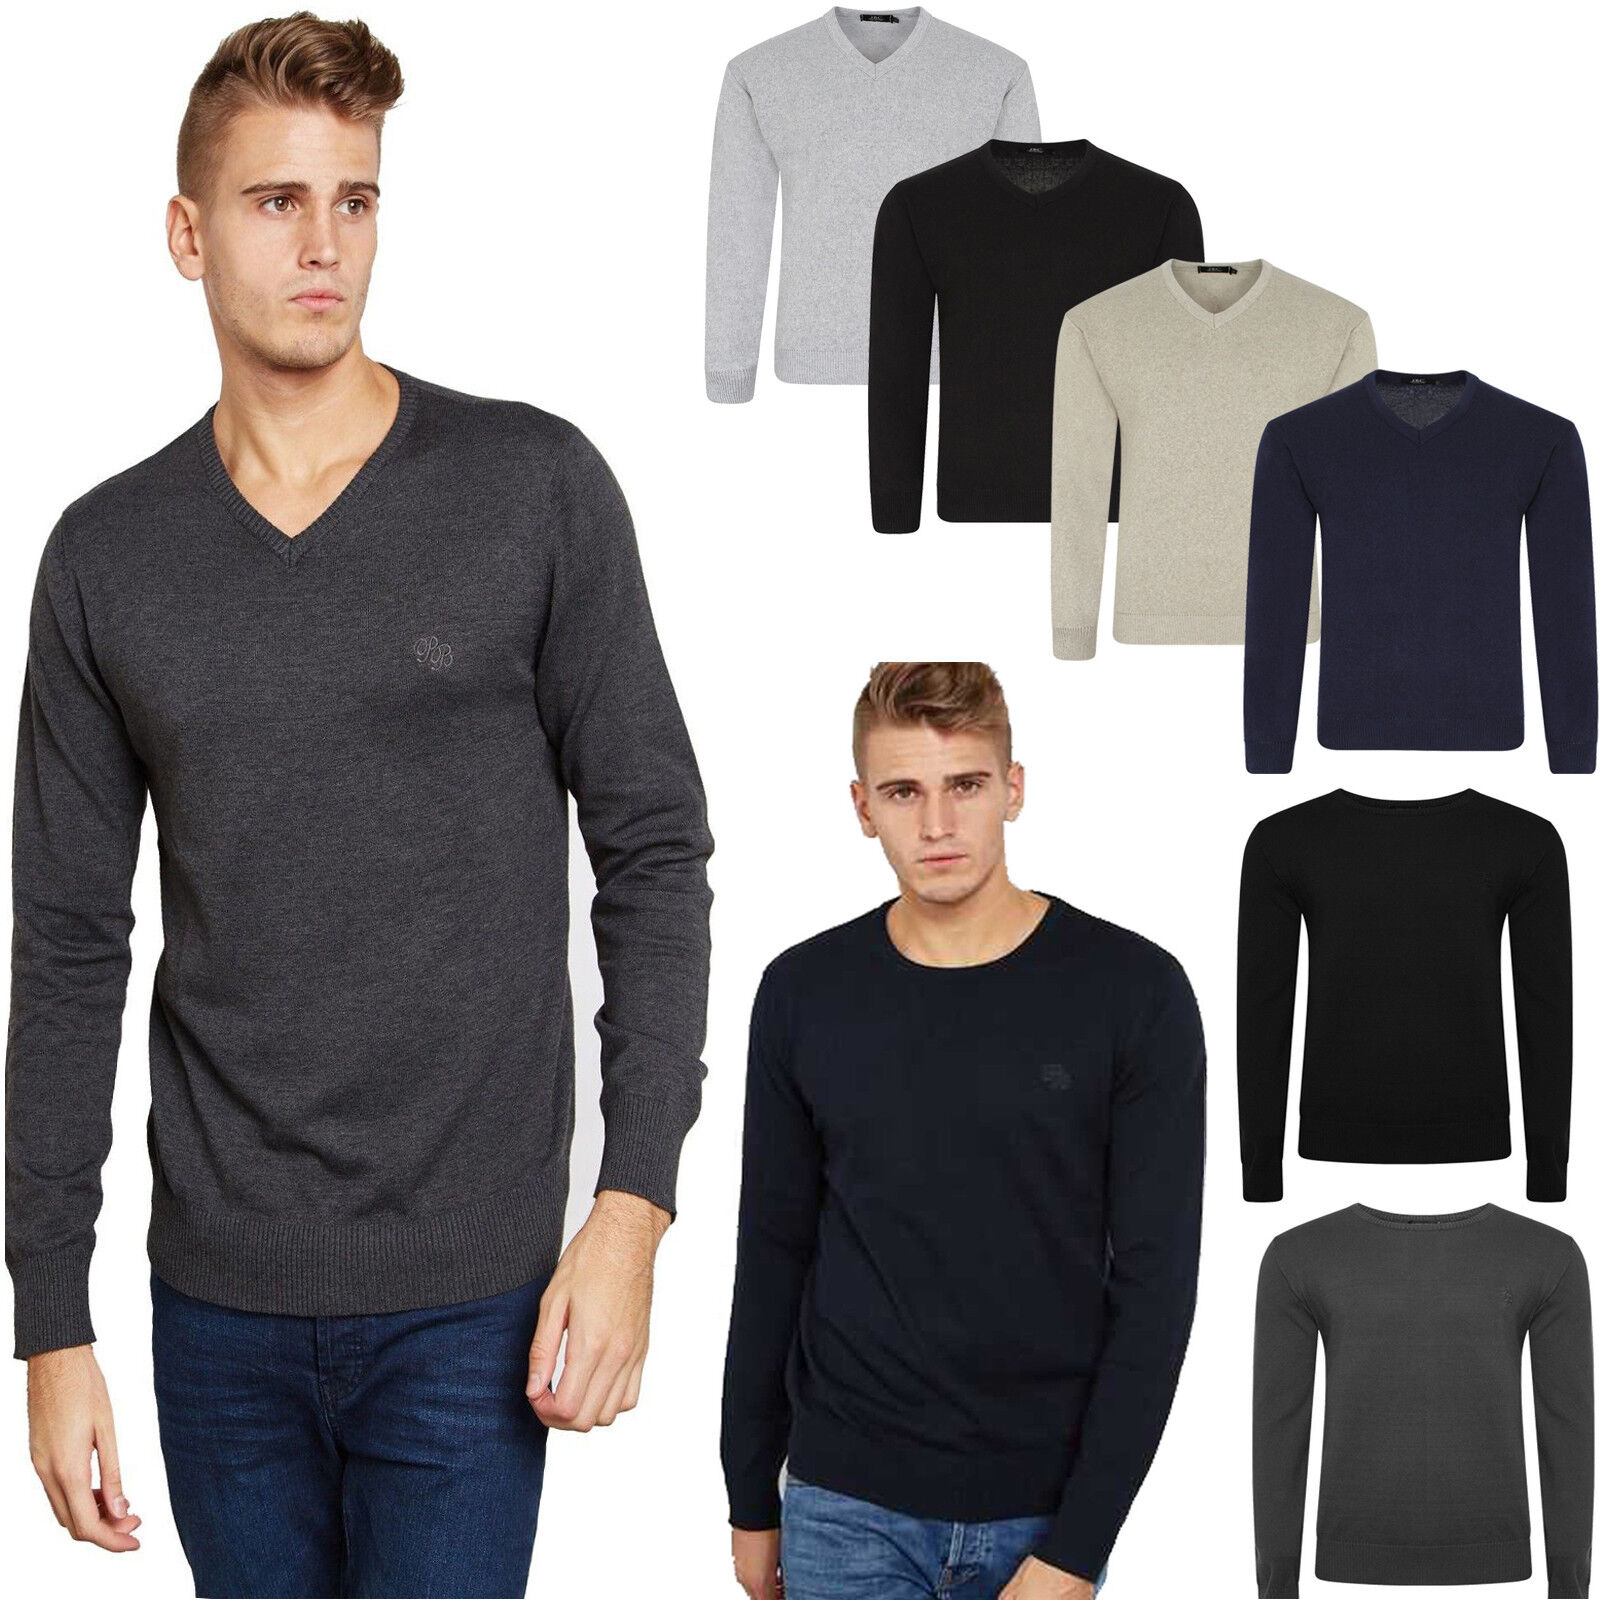 fb53e0a0 NEW MENS V NECK JUMPER PULL OVER LONG SLEEVE PLAIN SOFT KNITTED BIG PLUS  SIZE